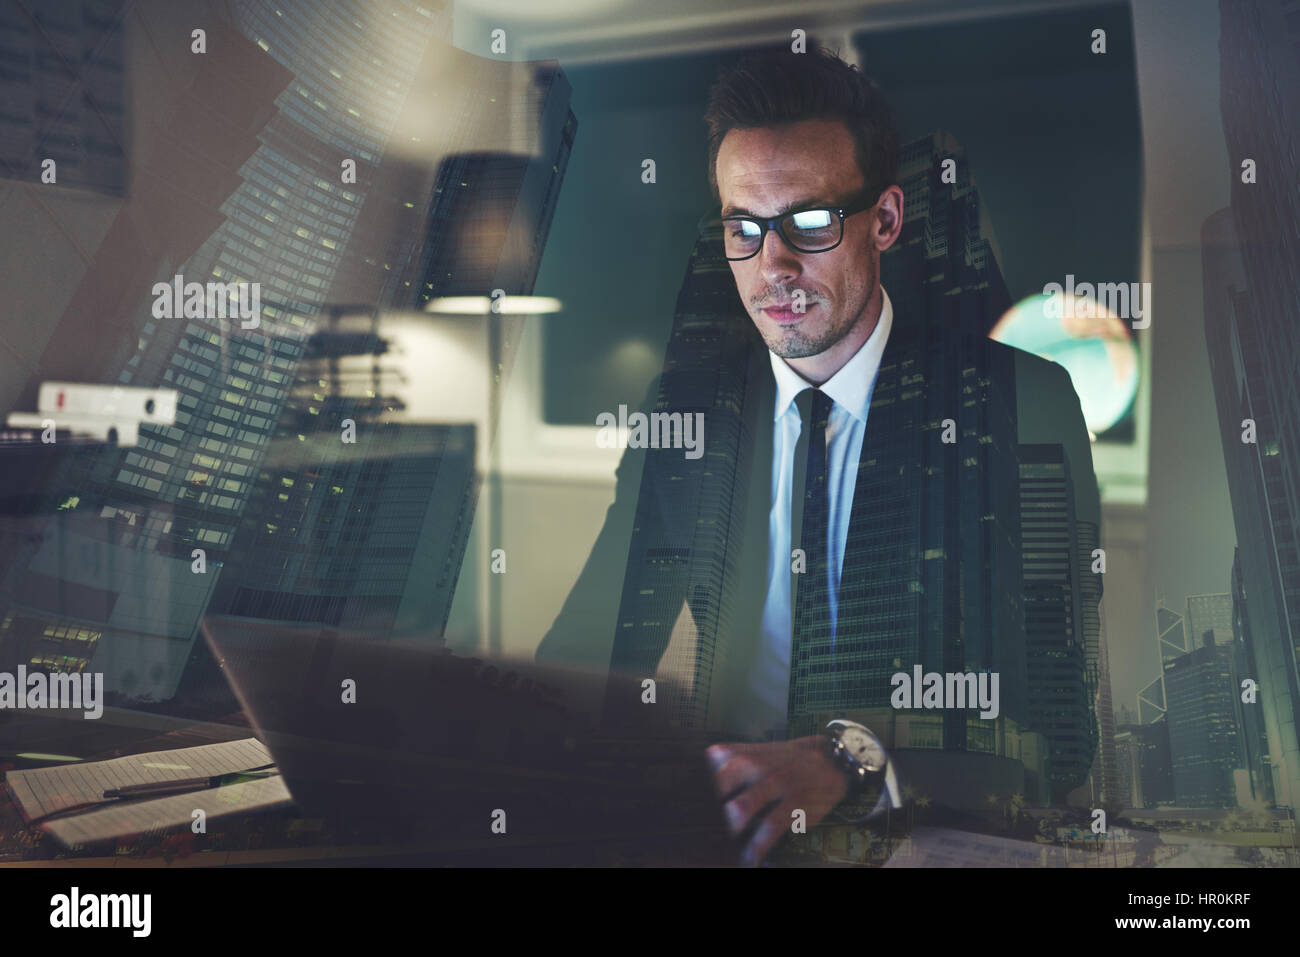 Concentrated businessman working at office at night, big city business concept - Stock Image